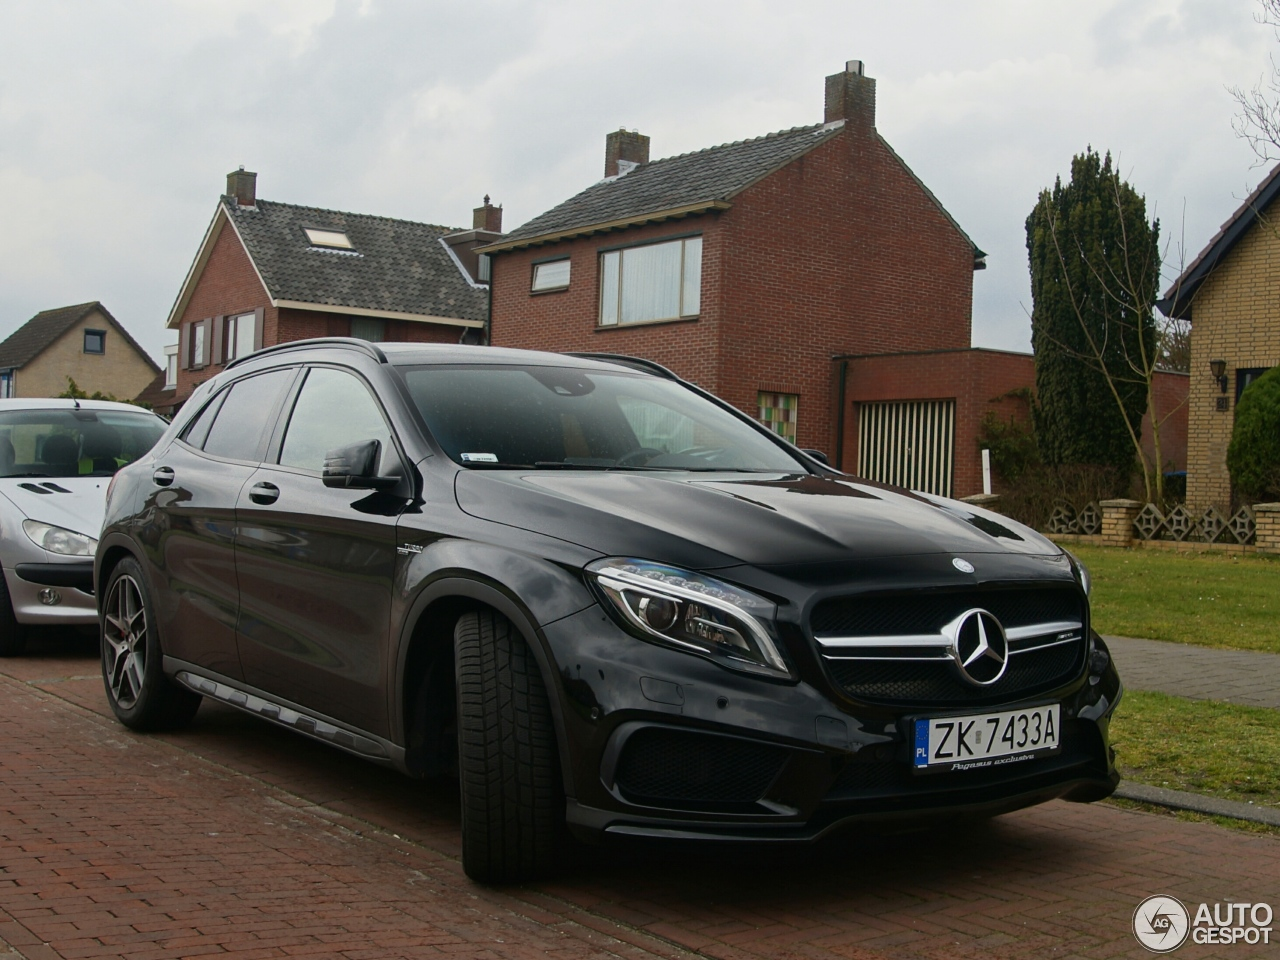 Mercedes benz gla 45 amg x156 3 april 2016 autogespot for Mercedes benz gla 45 amg for sale